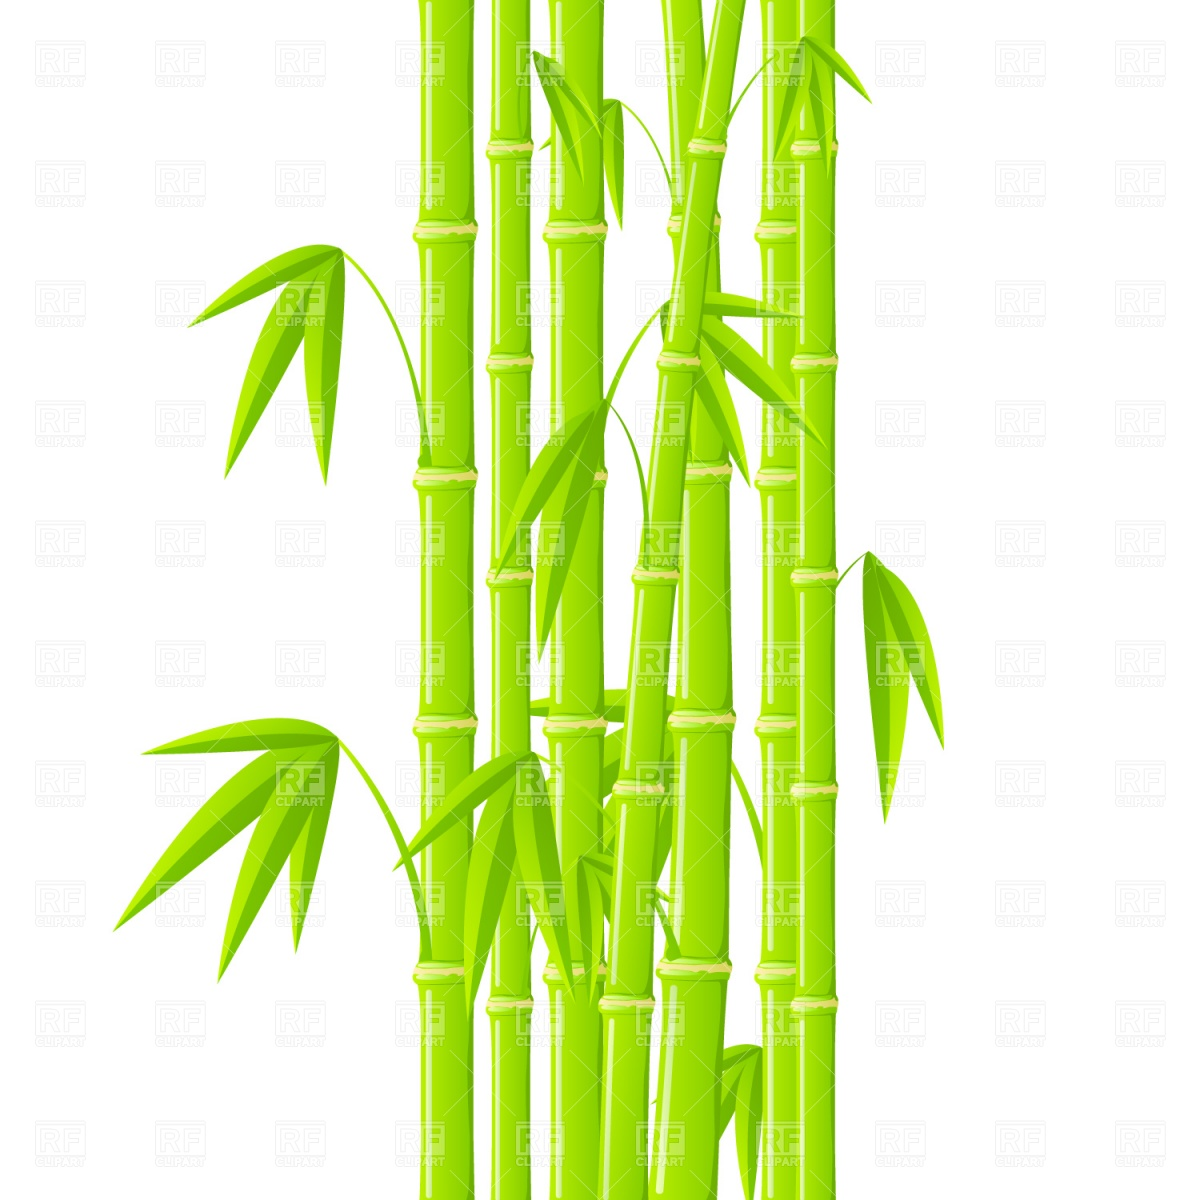 1200x1200 Green Bamboo Stems With Leaves Vector Image Vector Artwork Of